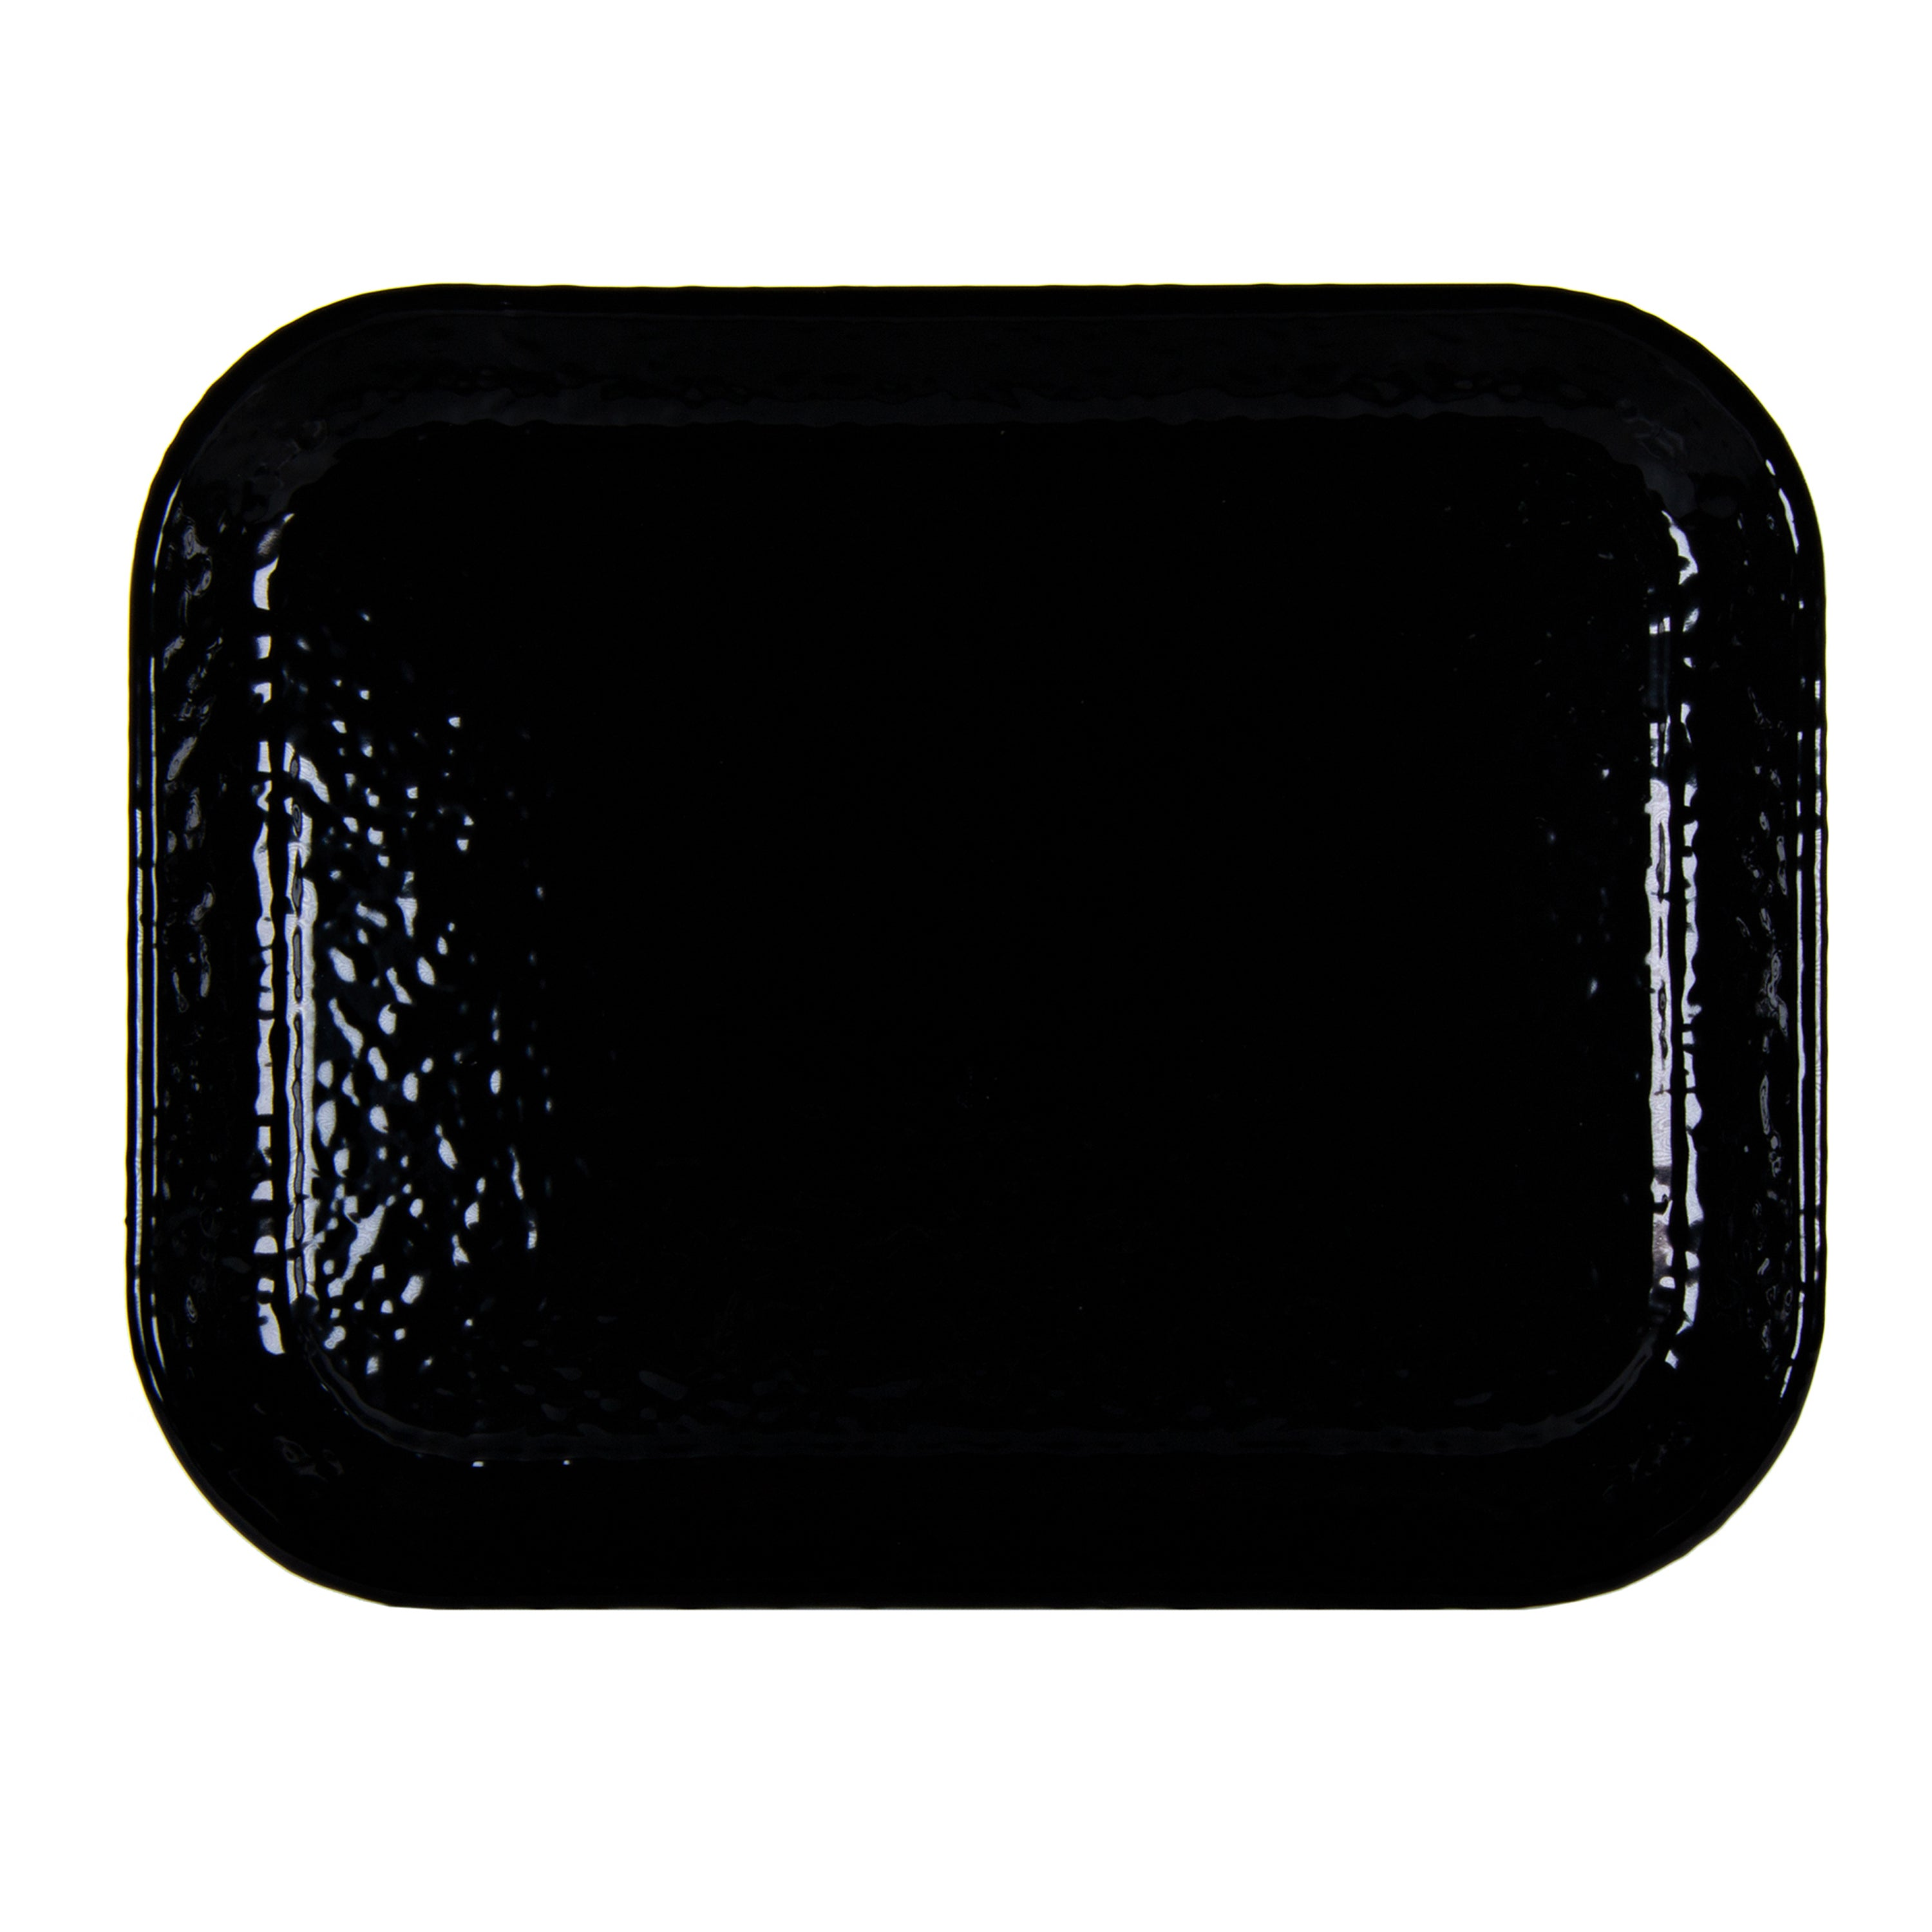 BK98 - Solid Black Half Sheet Tray Image 1